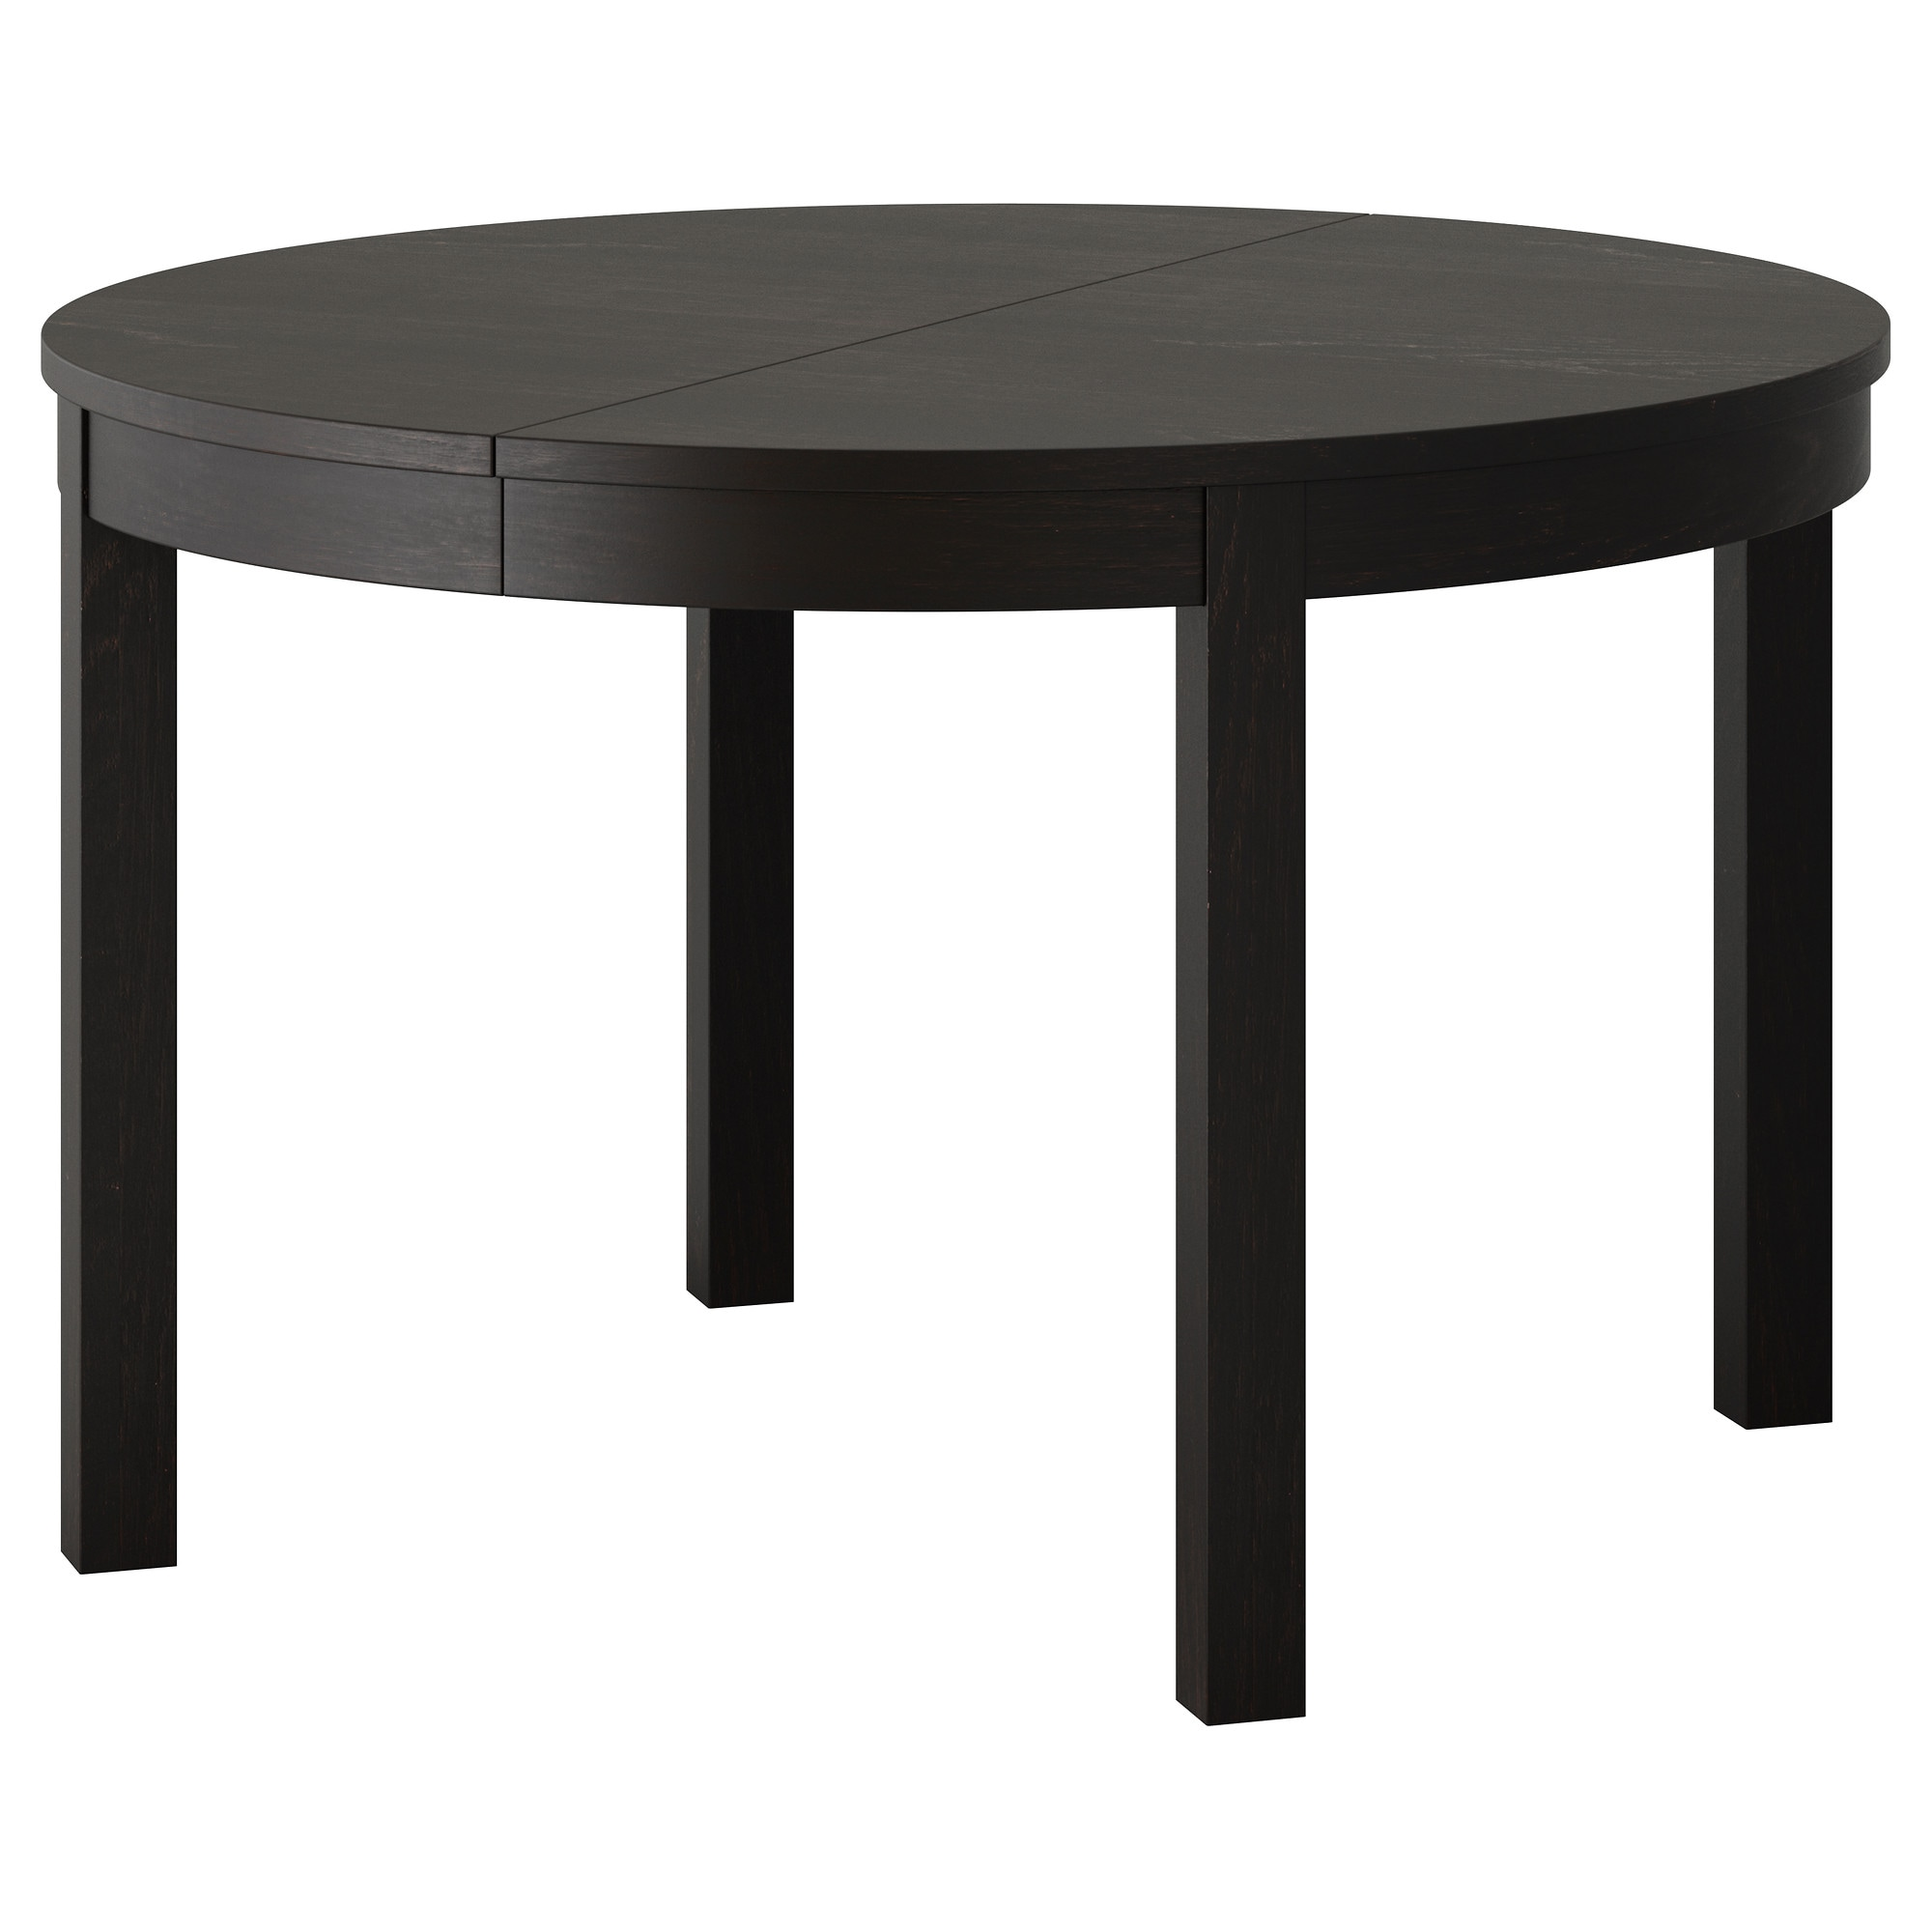 BJURSTA Extendable Table, Brown Black Max. Length: 65 3/8  Part 75